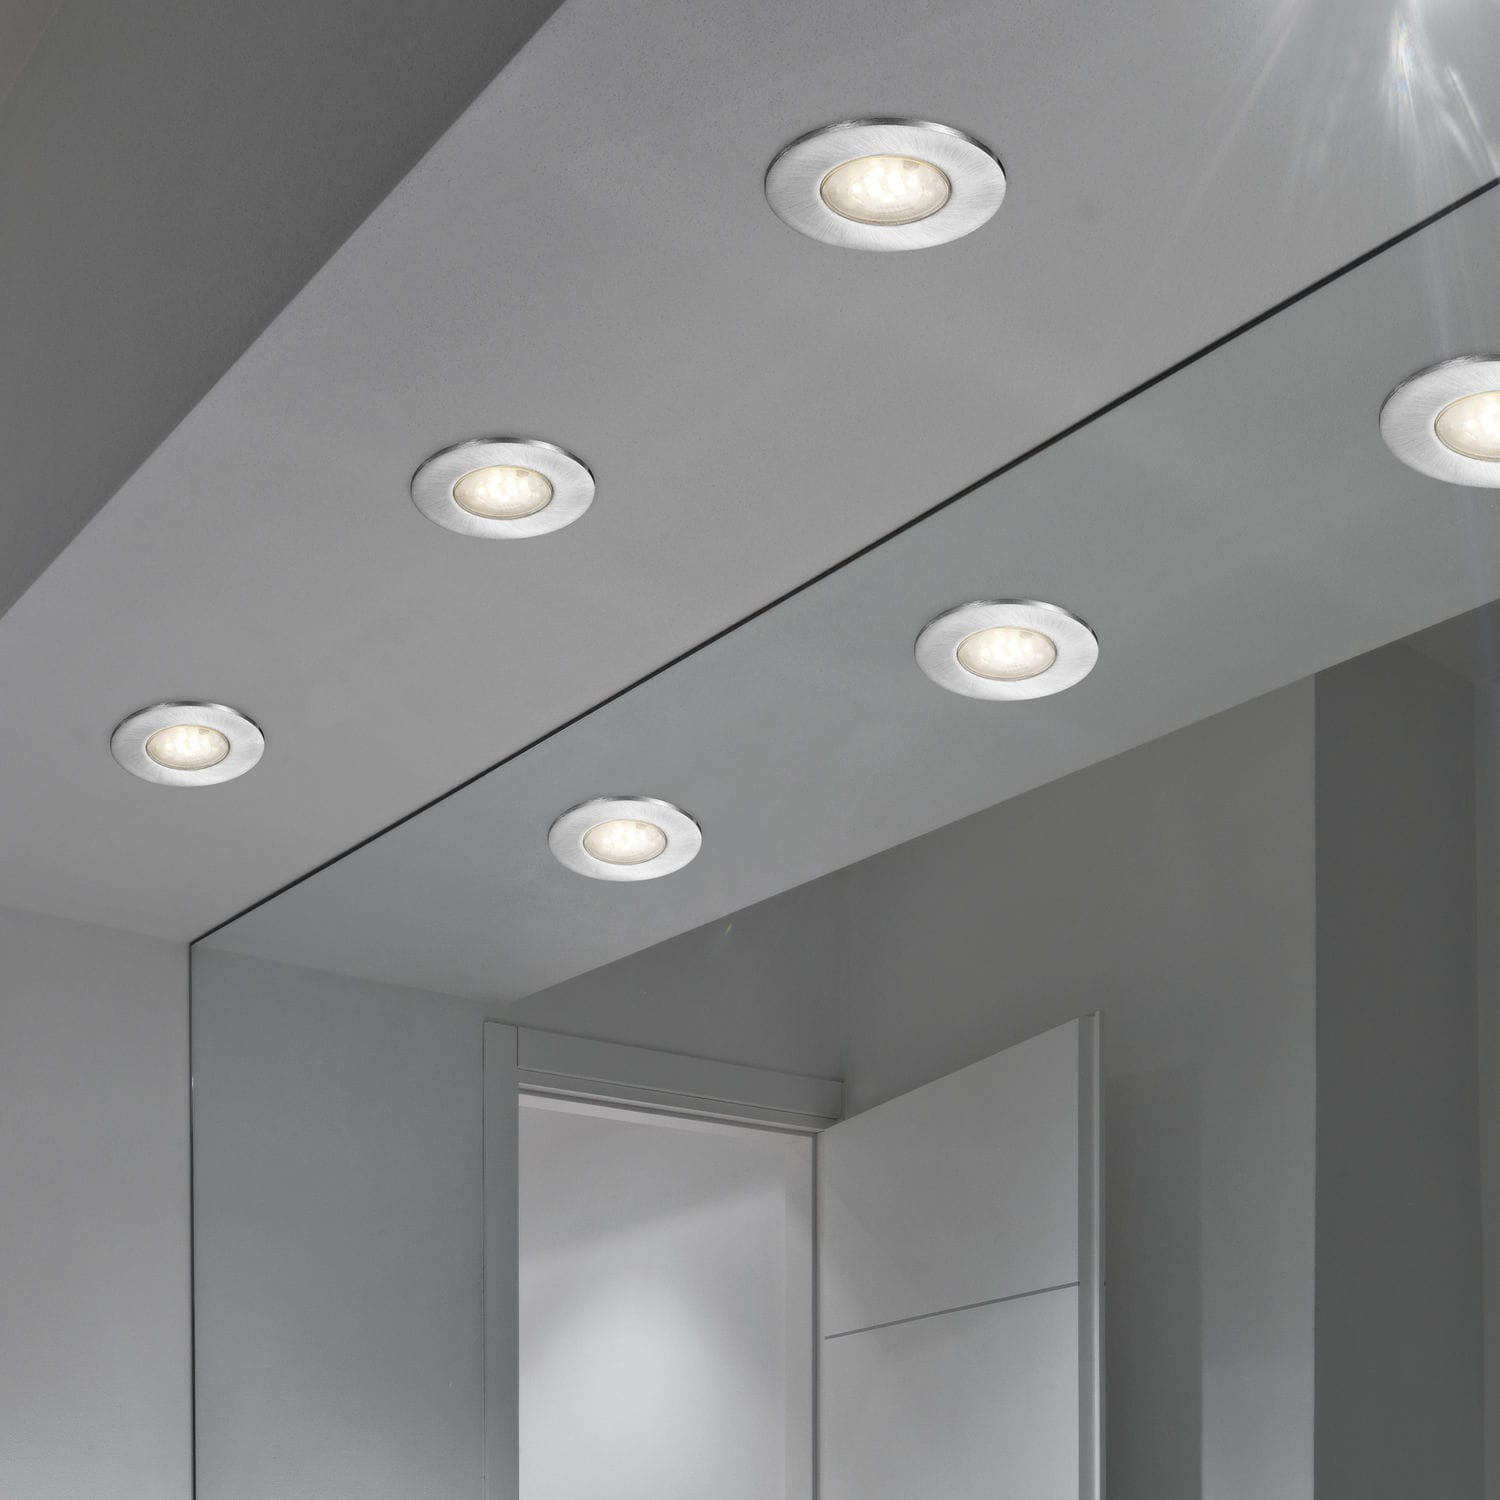 Recessed Ceiling Downlight Compo